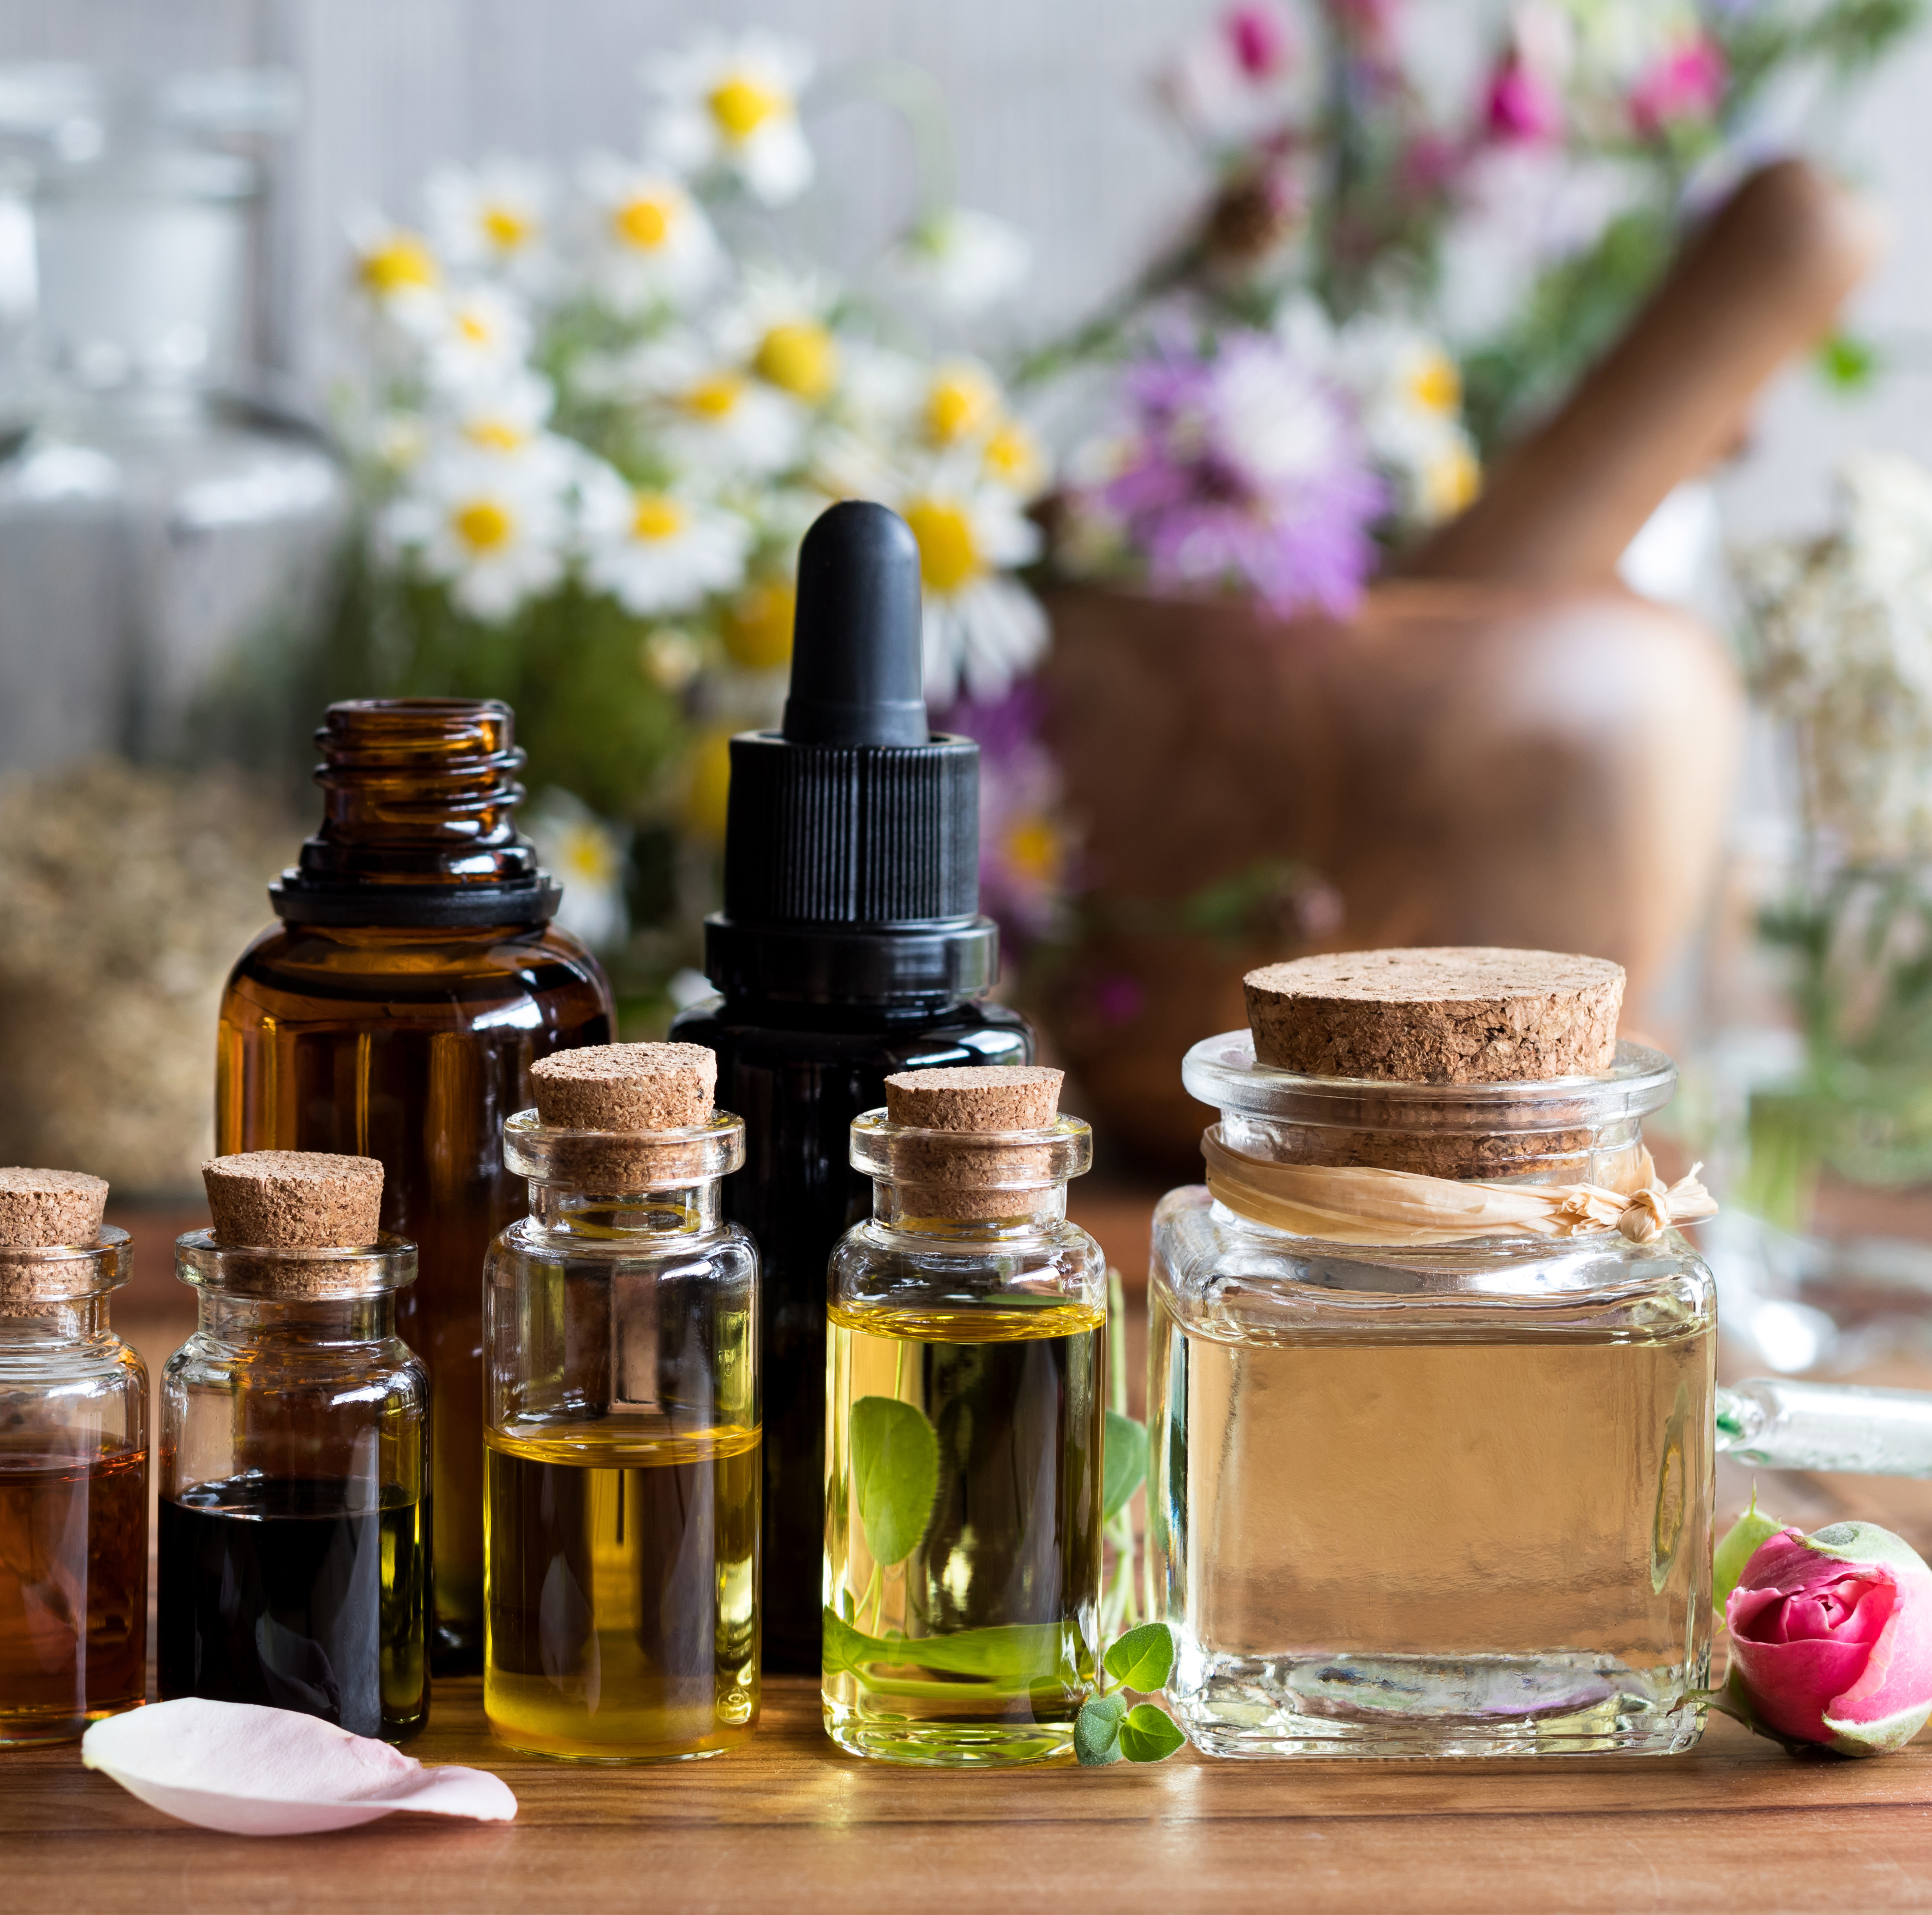 Essential oils used for aromatherapy are bottled plant essences